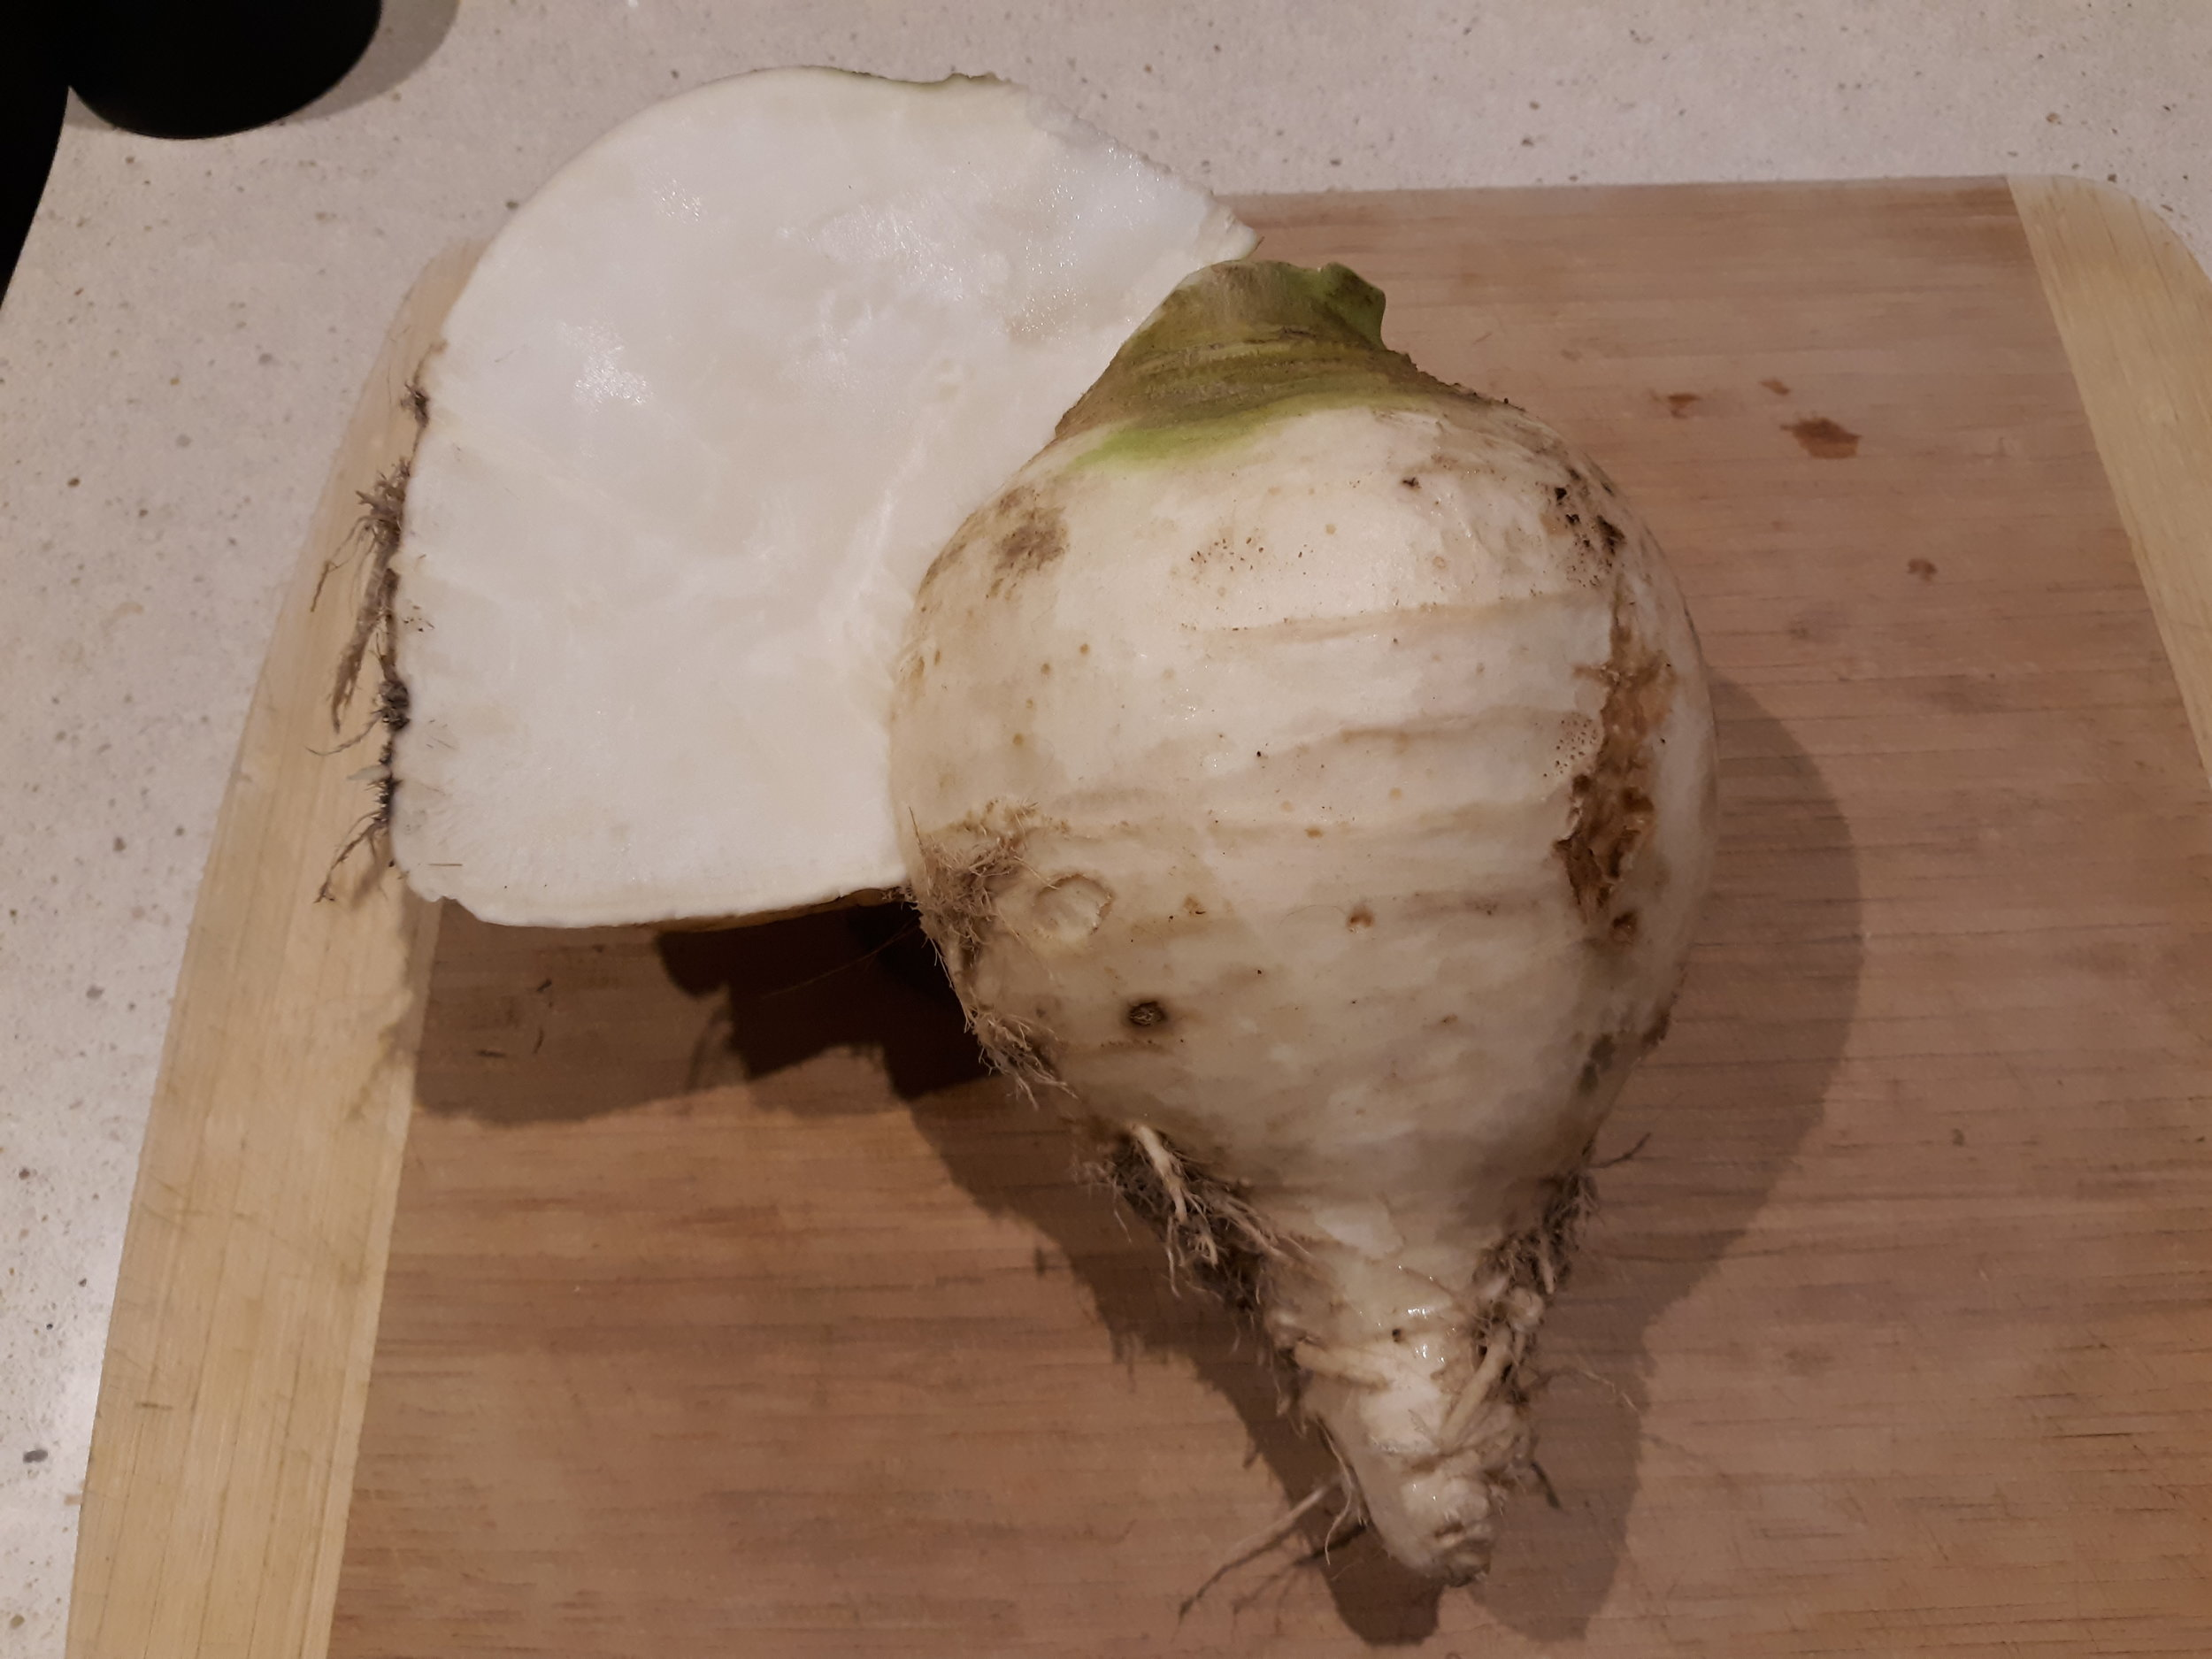 Cut in half and ready to peel and eat raw.